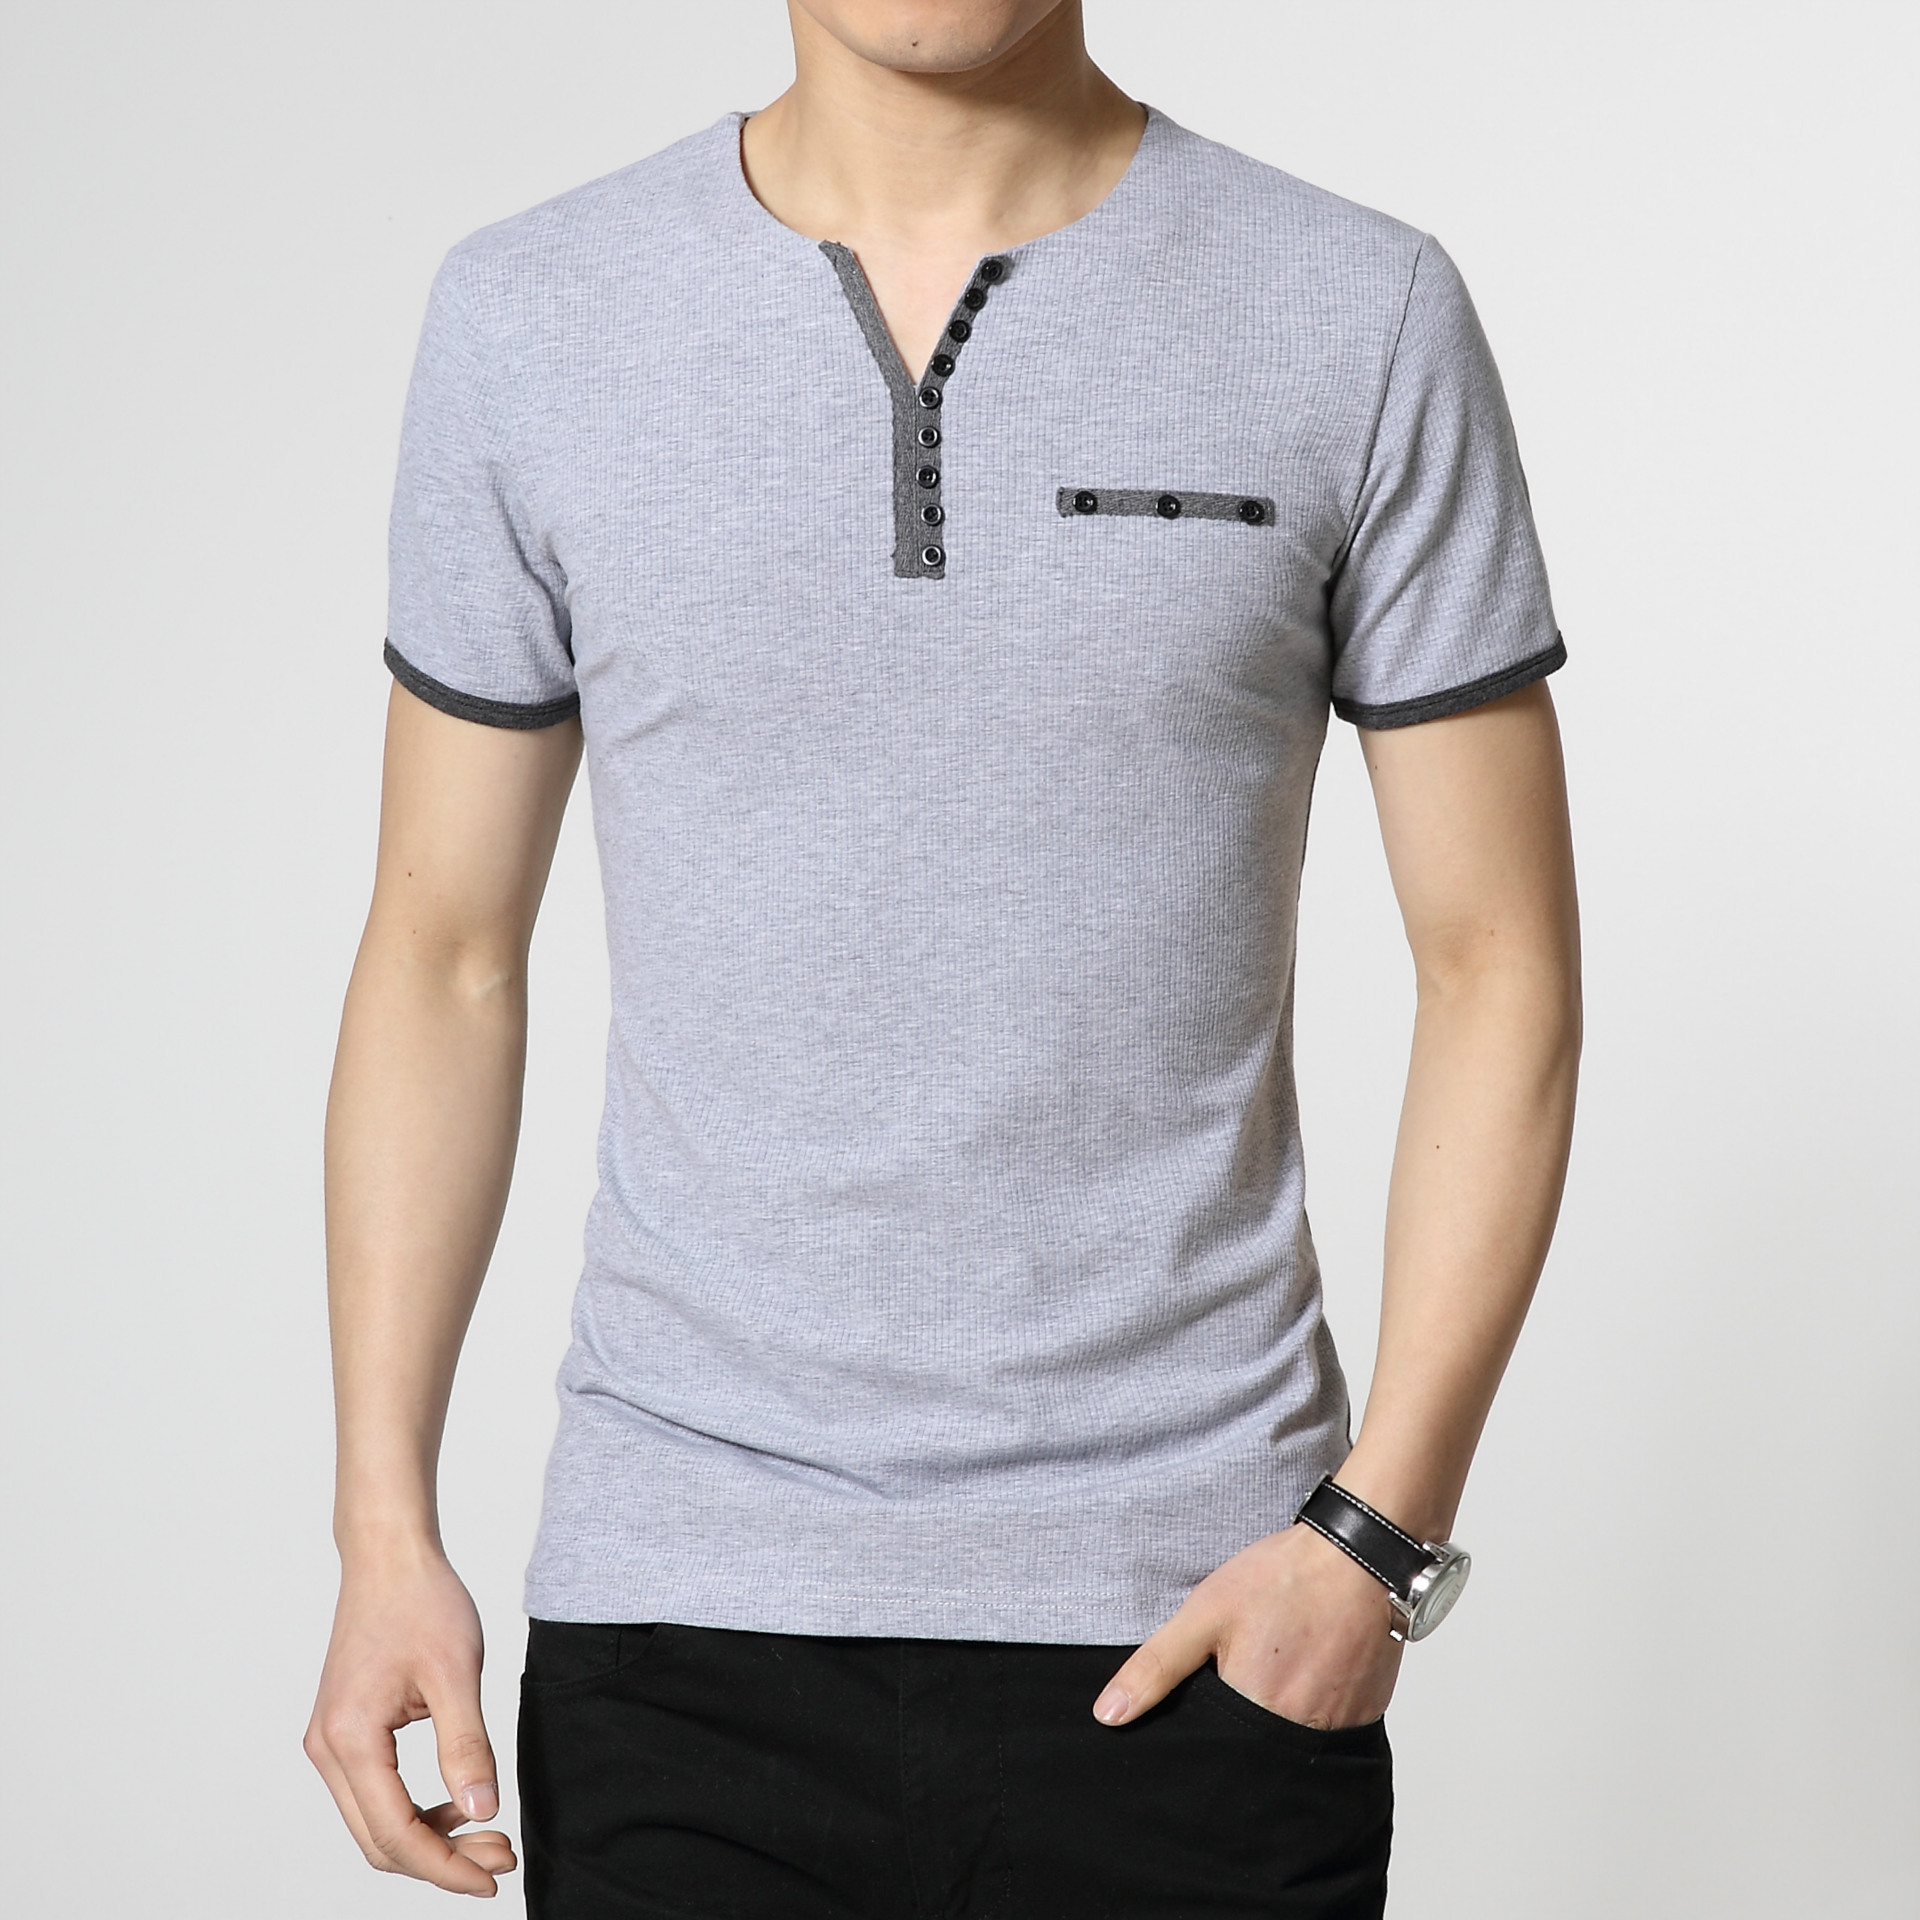 2015 summer fashion solid color t shirts men high qulaity for High neck tee shirts